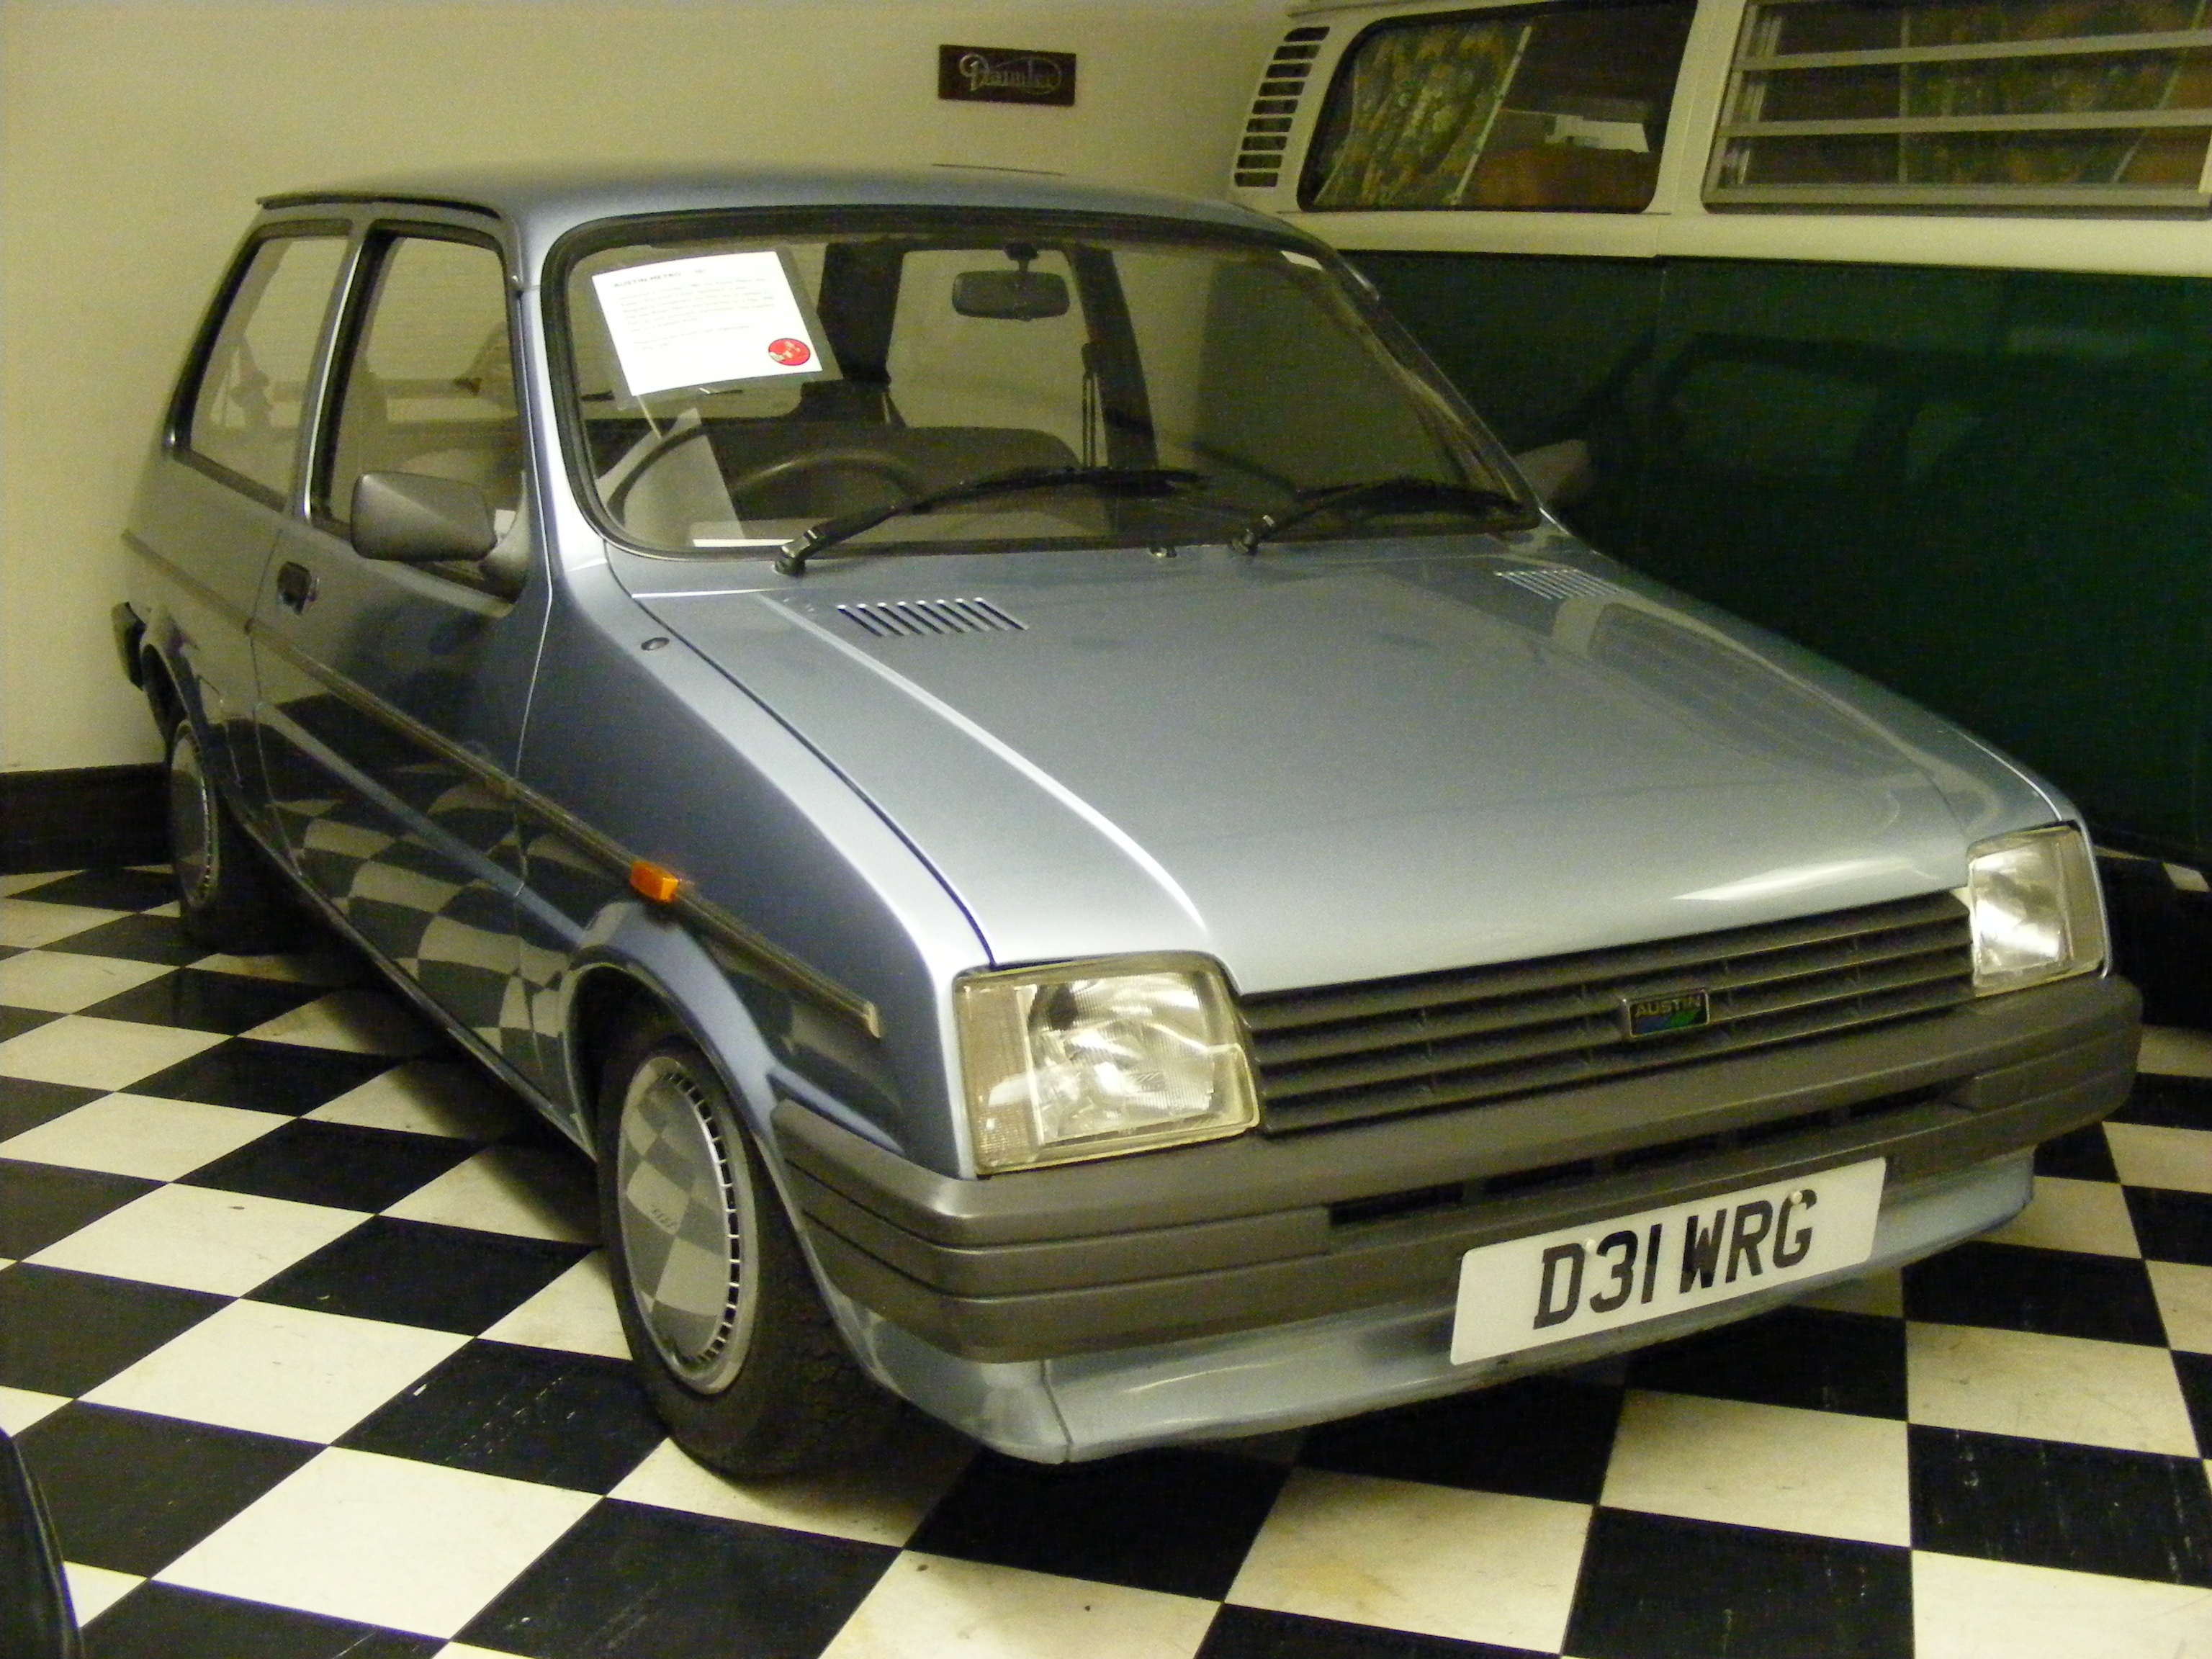 Austin Metro D31WRG Glasgow Museum of Transport | Flickr - Photo ...